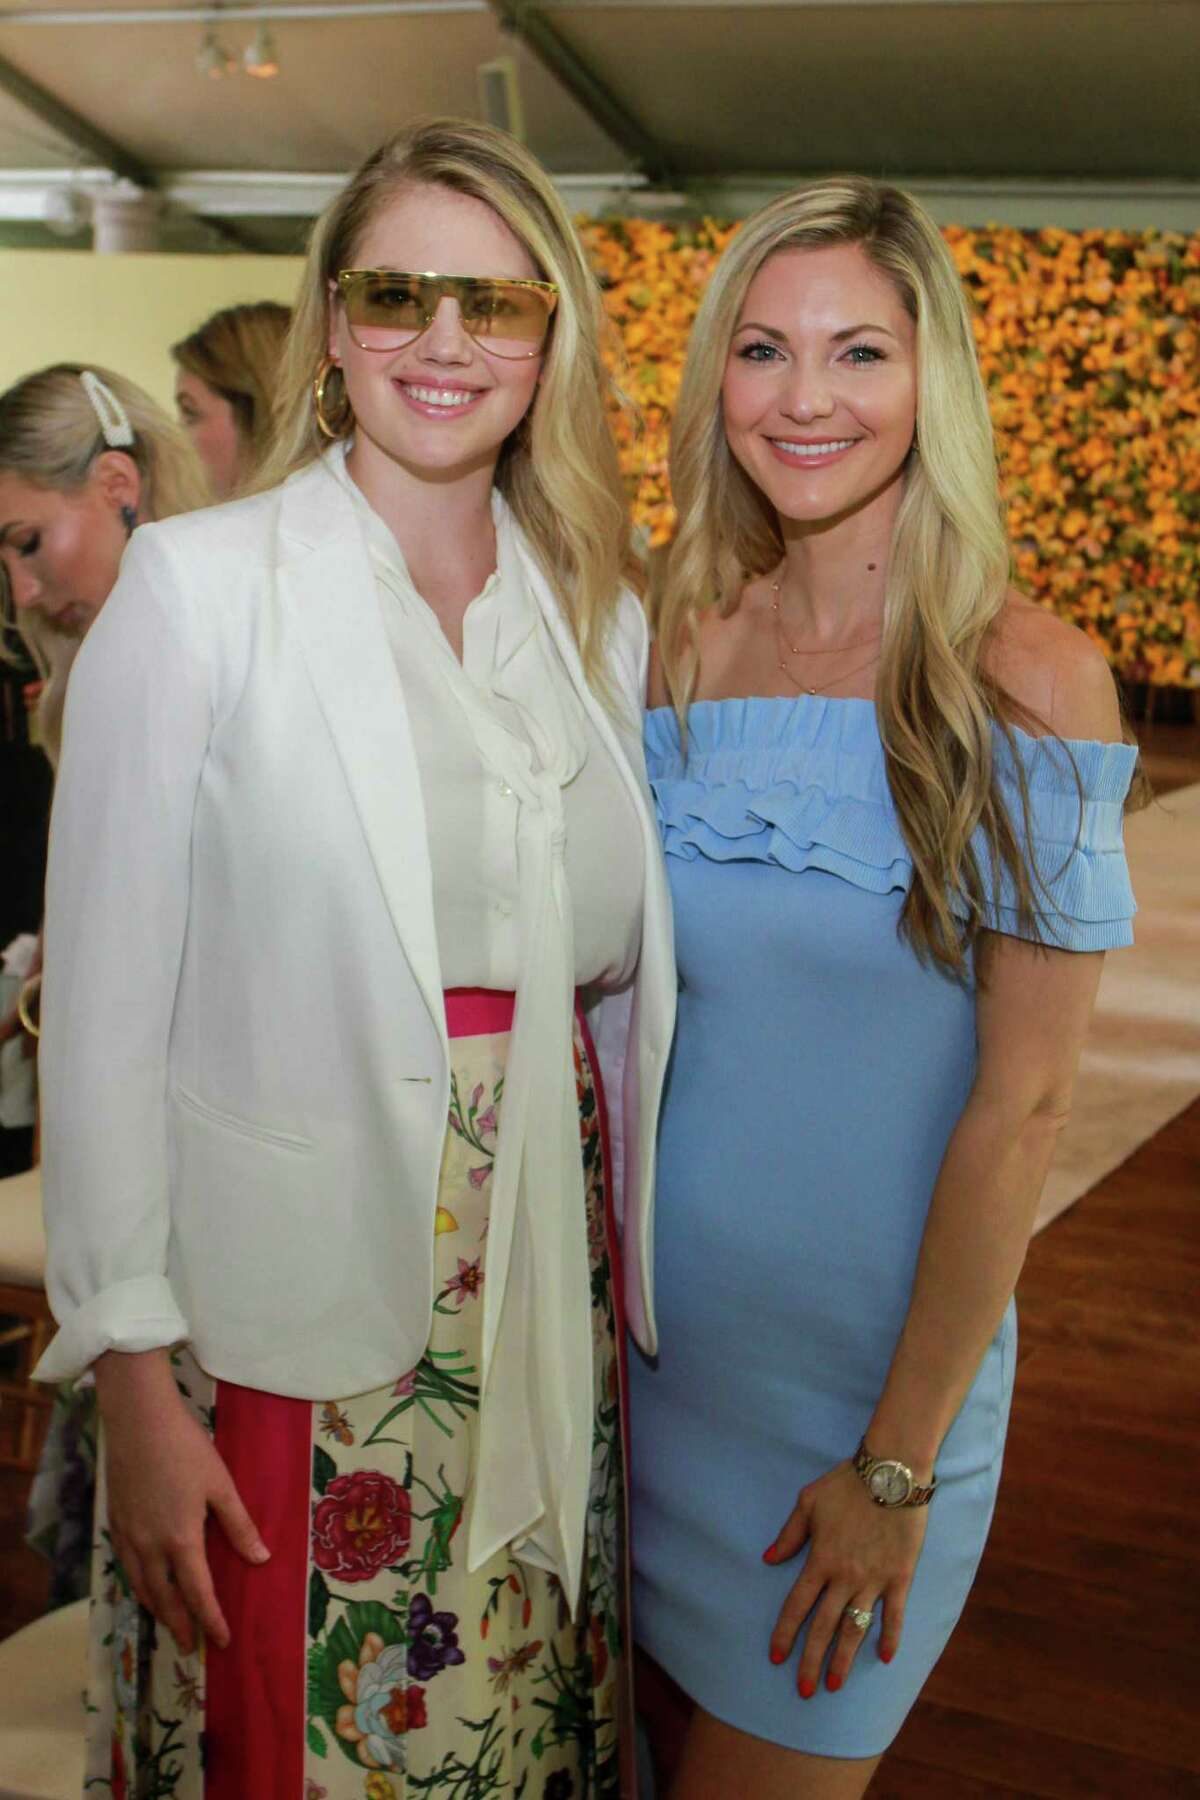 Kate Upton, left, and Amy Cole at MFAH's Bayou Bend fashion show and luncheon.